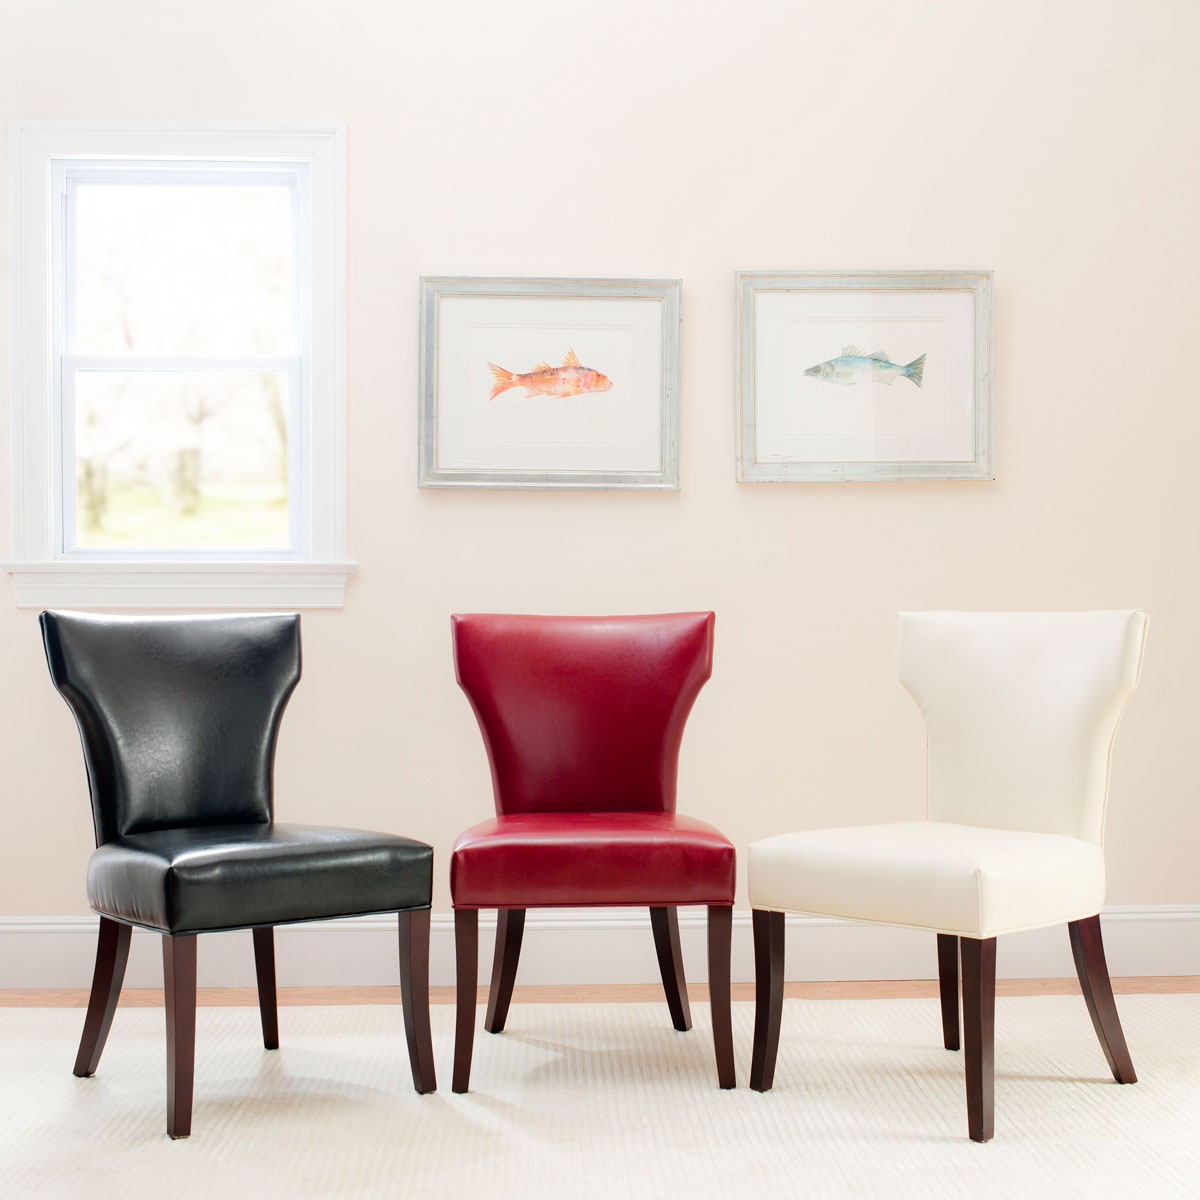 mcr4513a set2 dining chairs furniture by safavieh. Black Bedroom Furniture Sets. Home Design Ideas